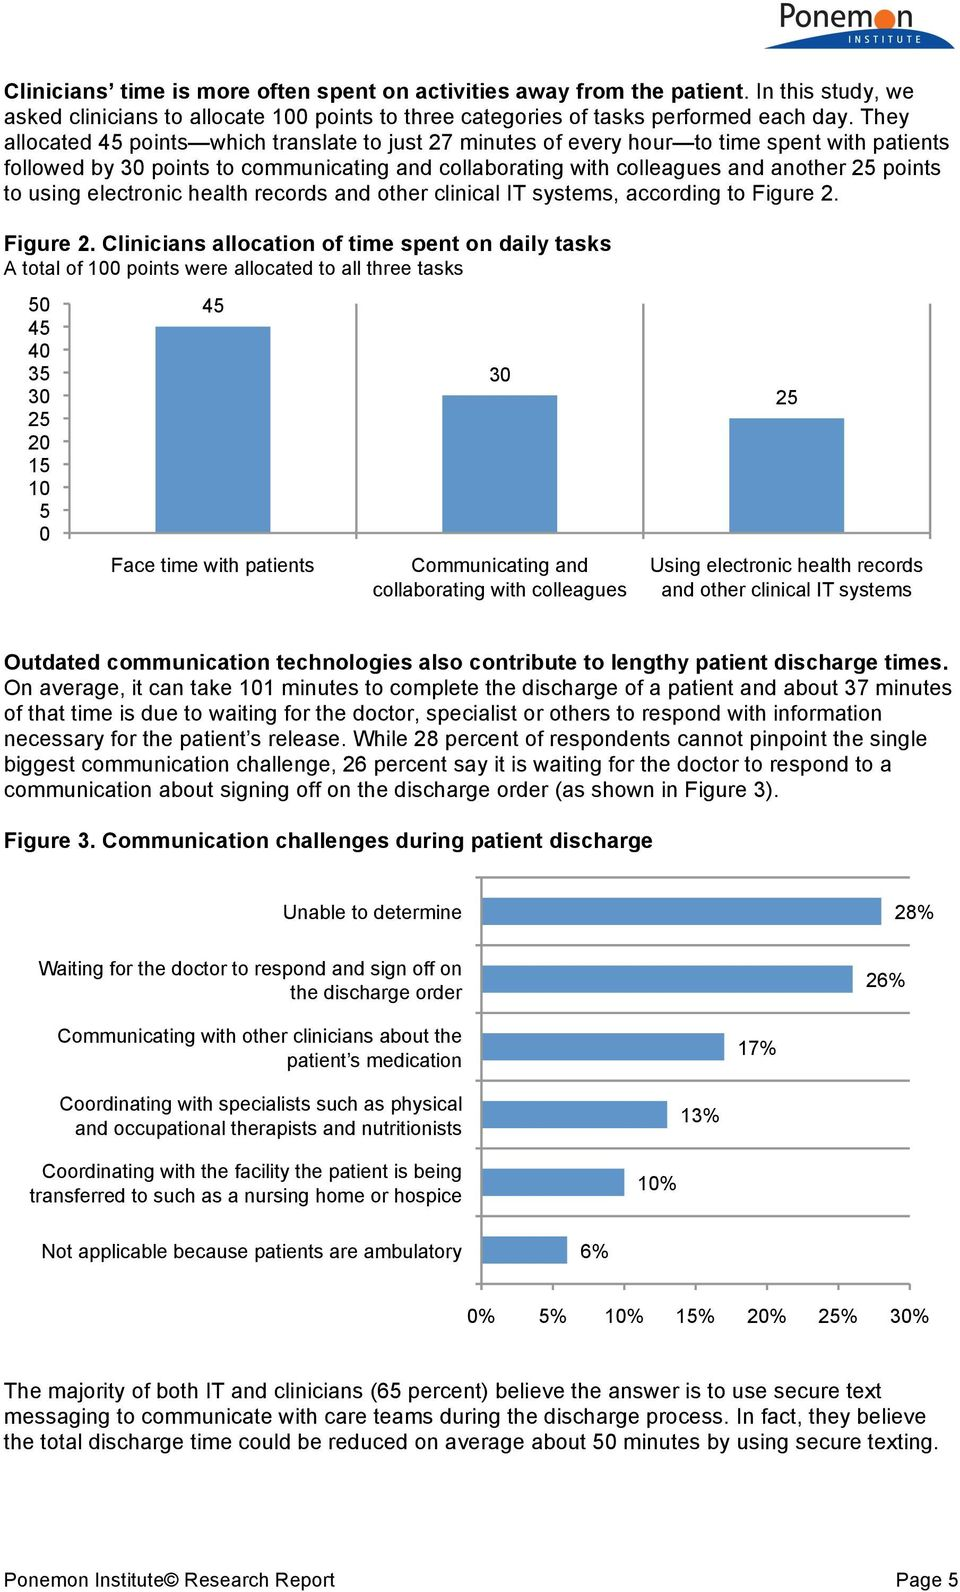 using electronic health records and other clinical IT systems, according to Figure 2.